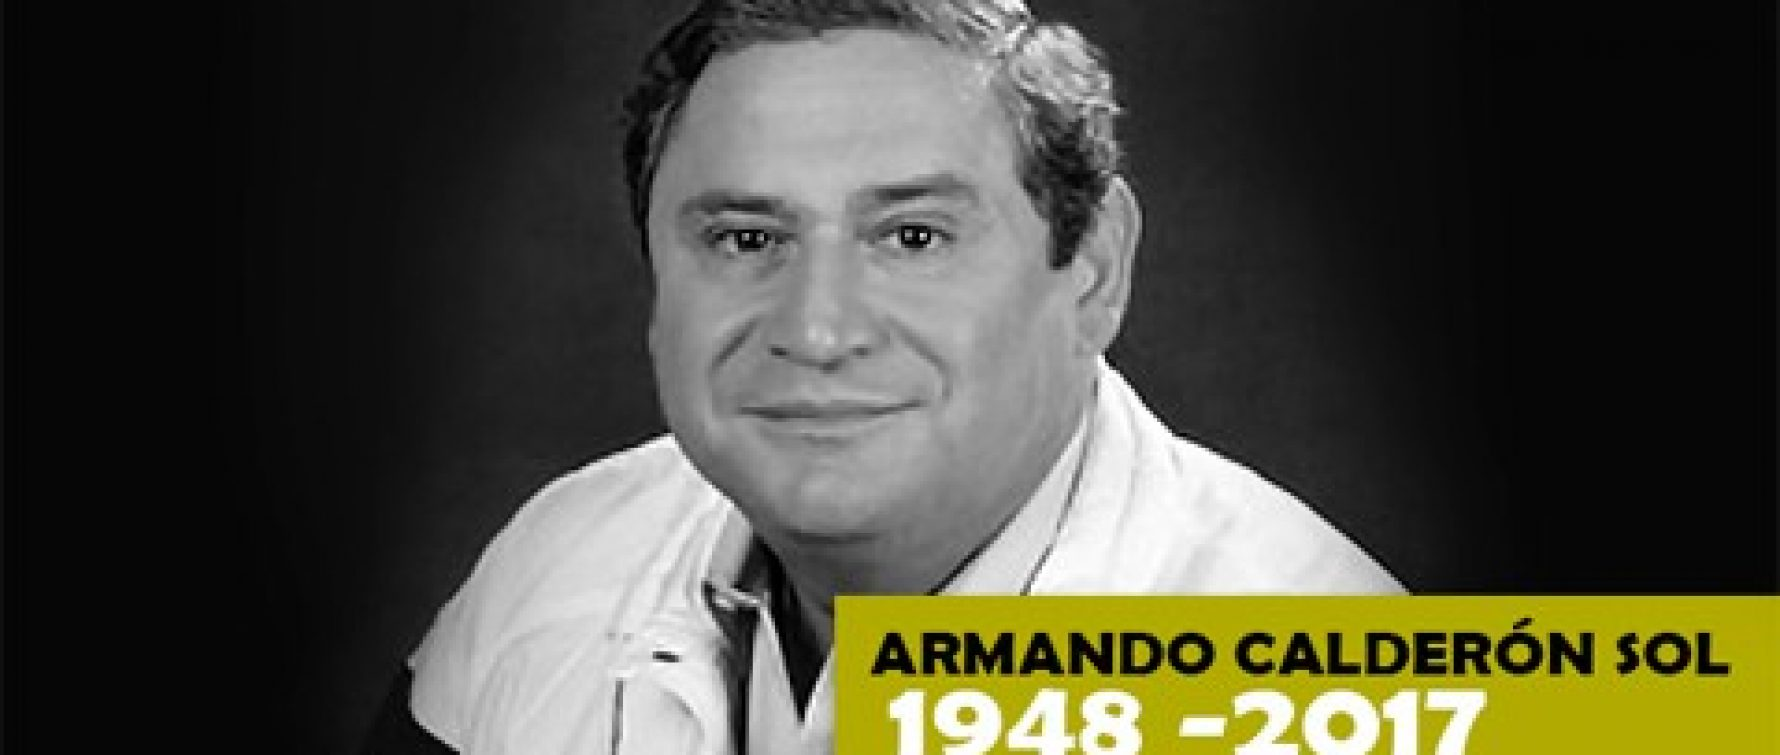 The IDC-CDI deeply regrets the death of the former president of Salvador, Armandocalderón